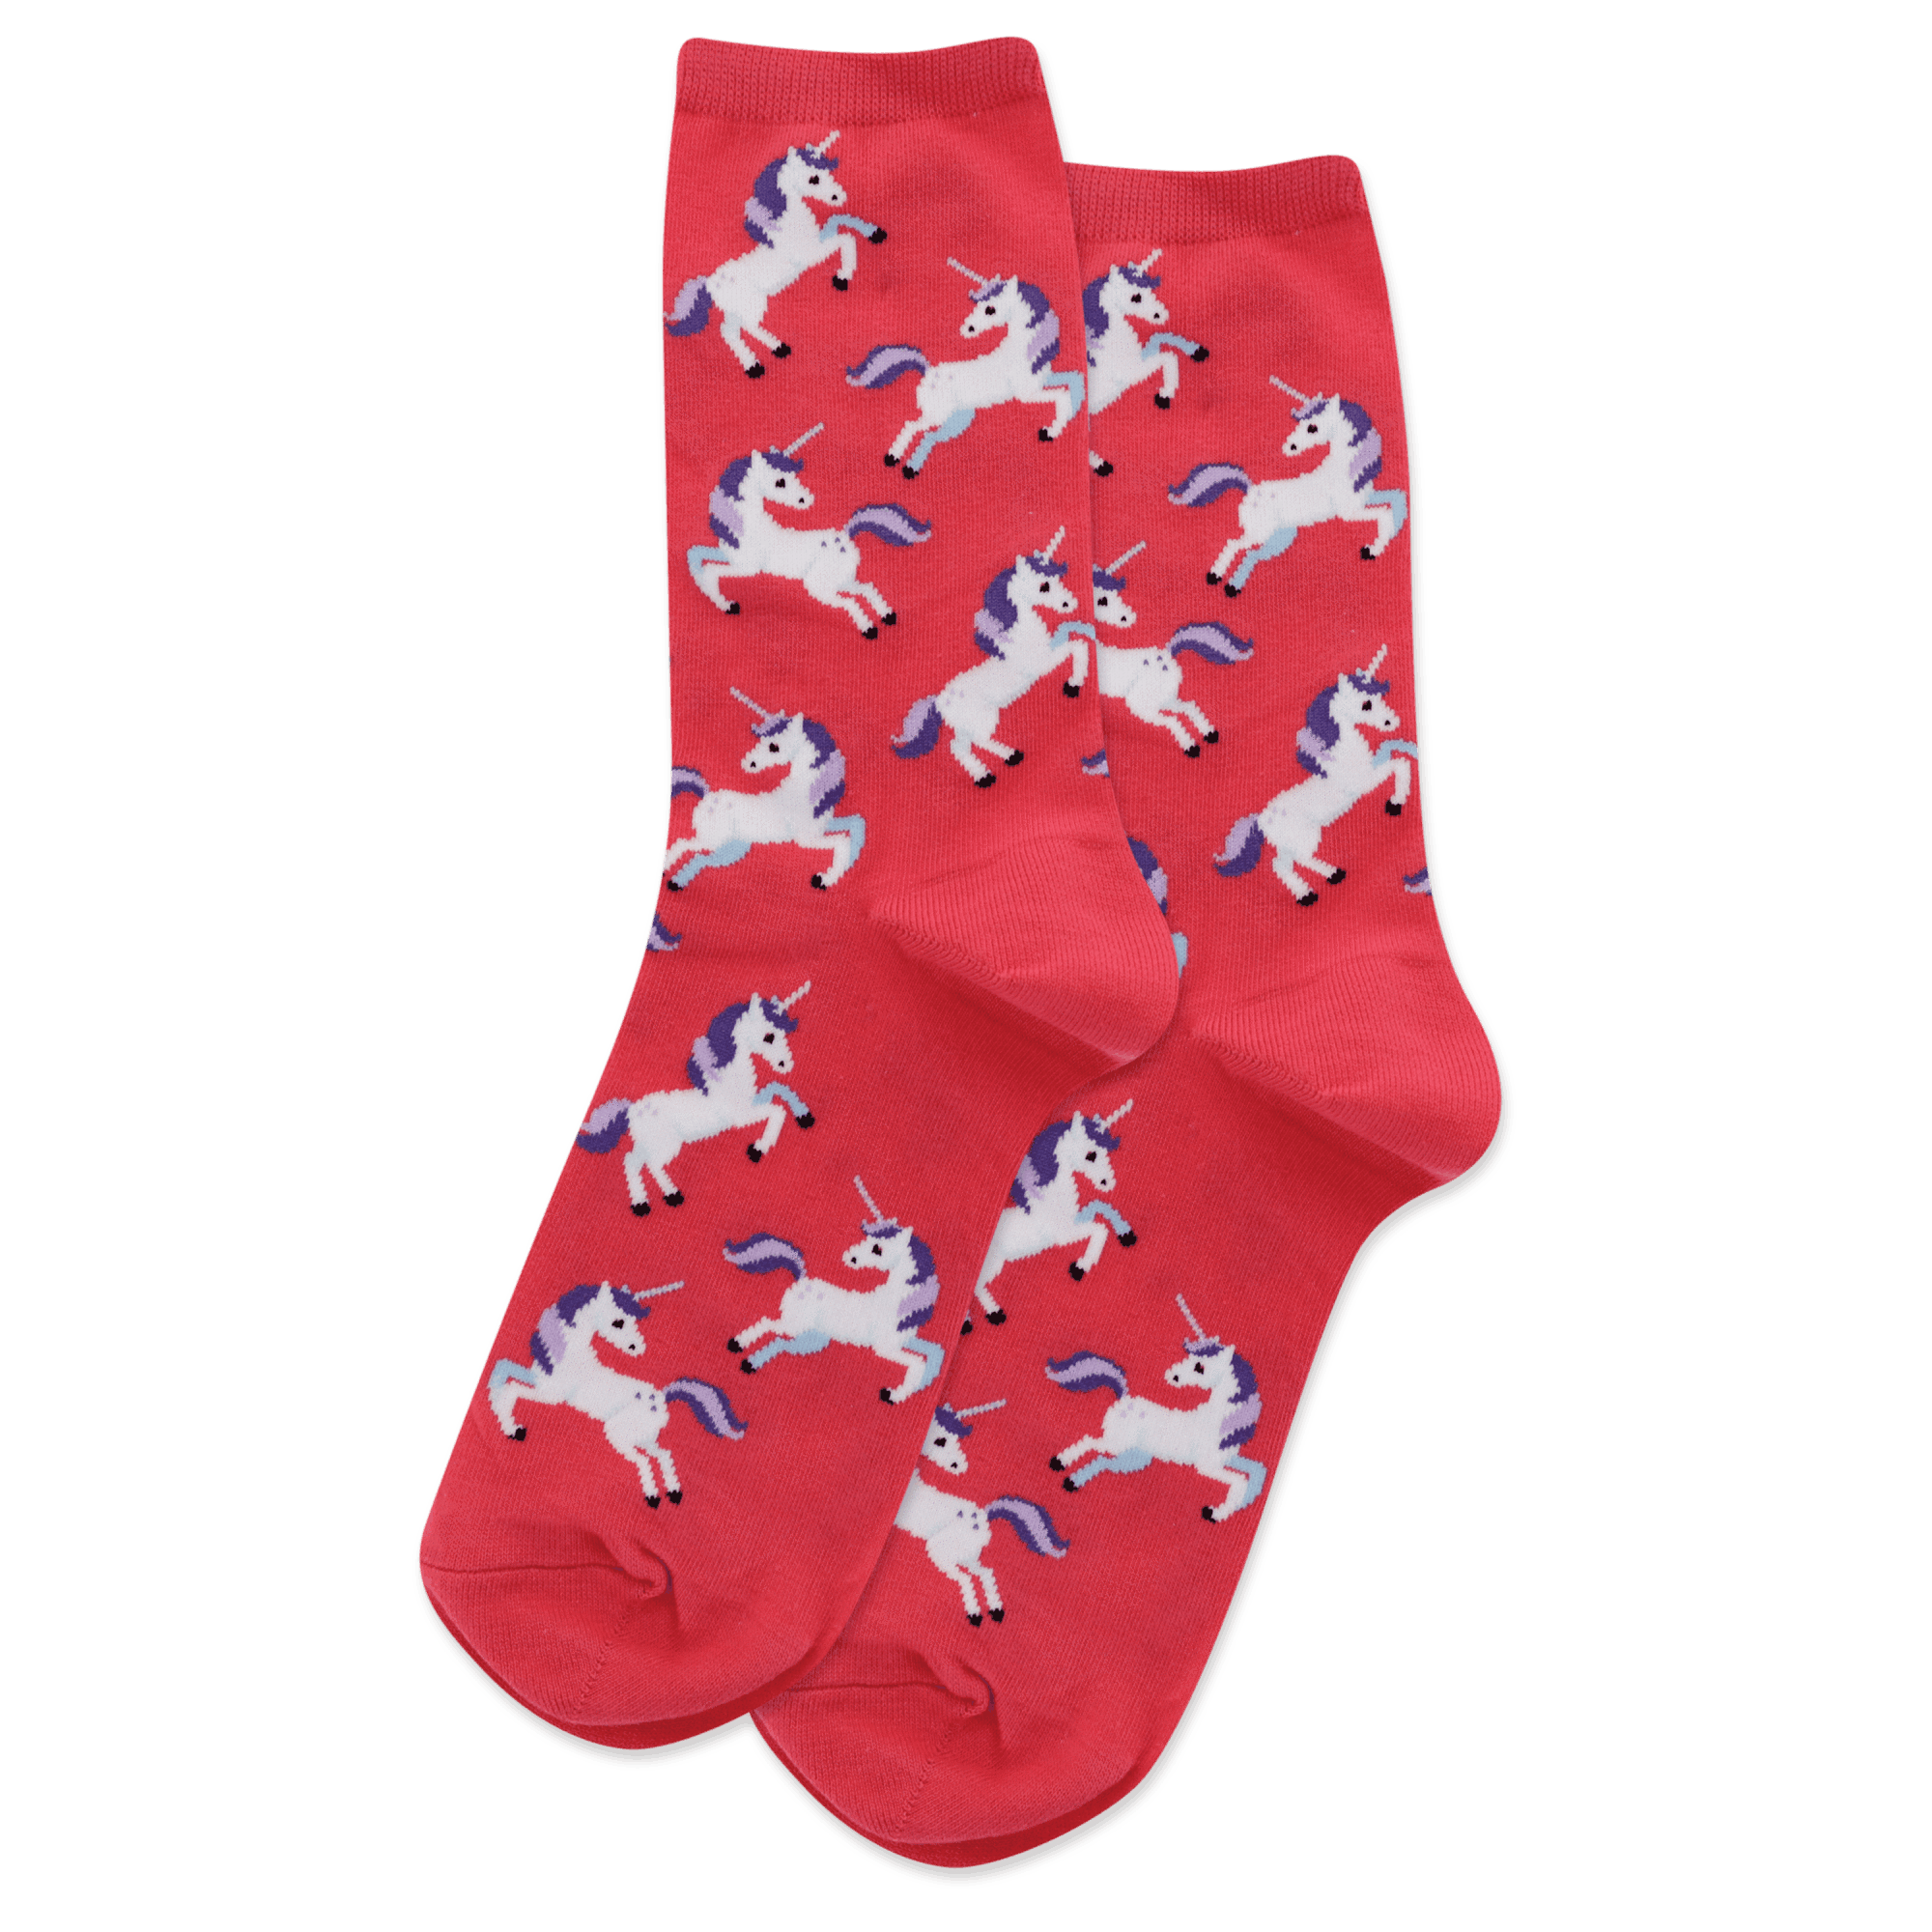 Women's Unicorn Crew Socks